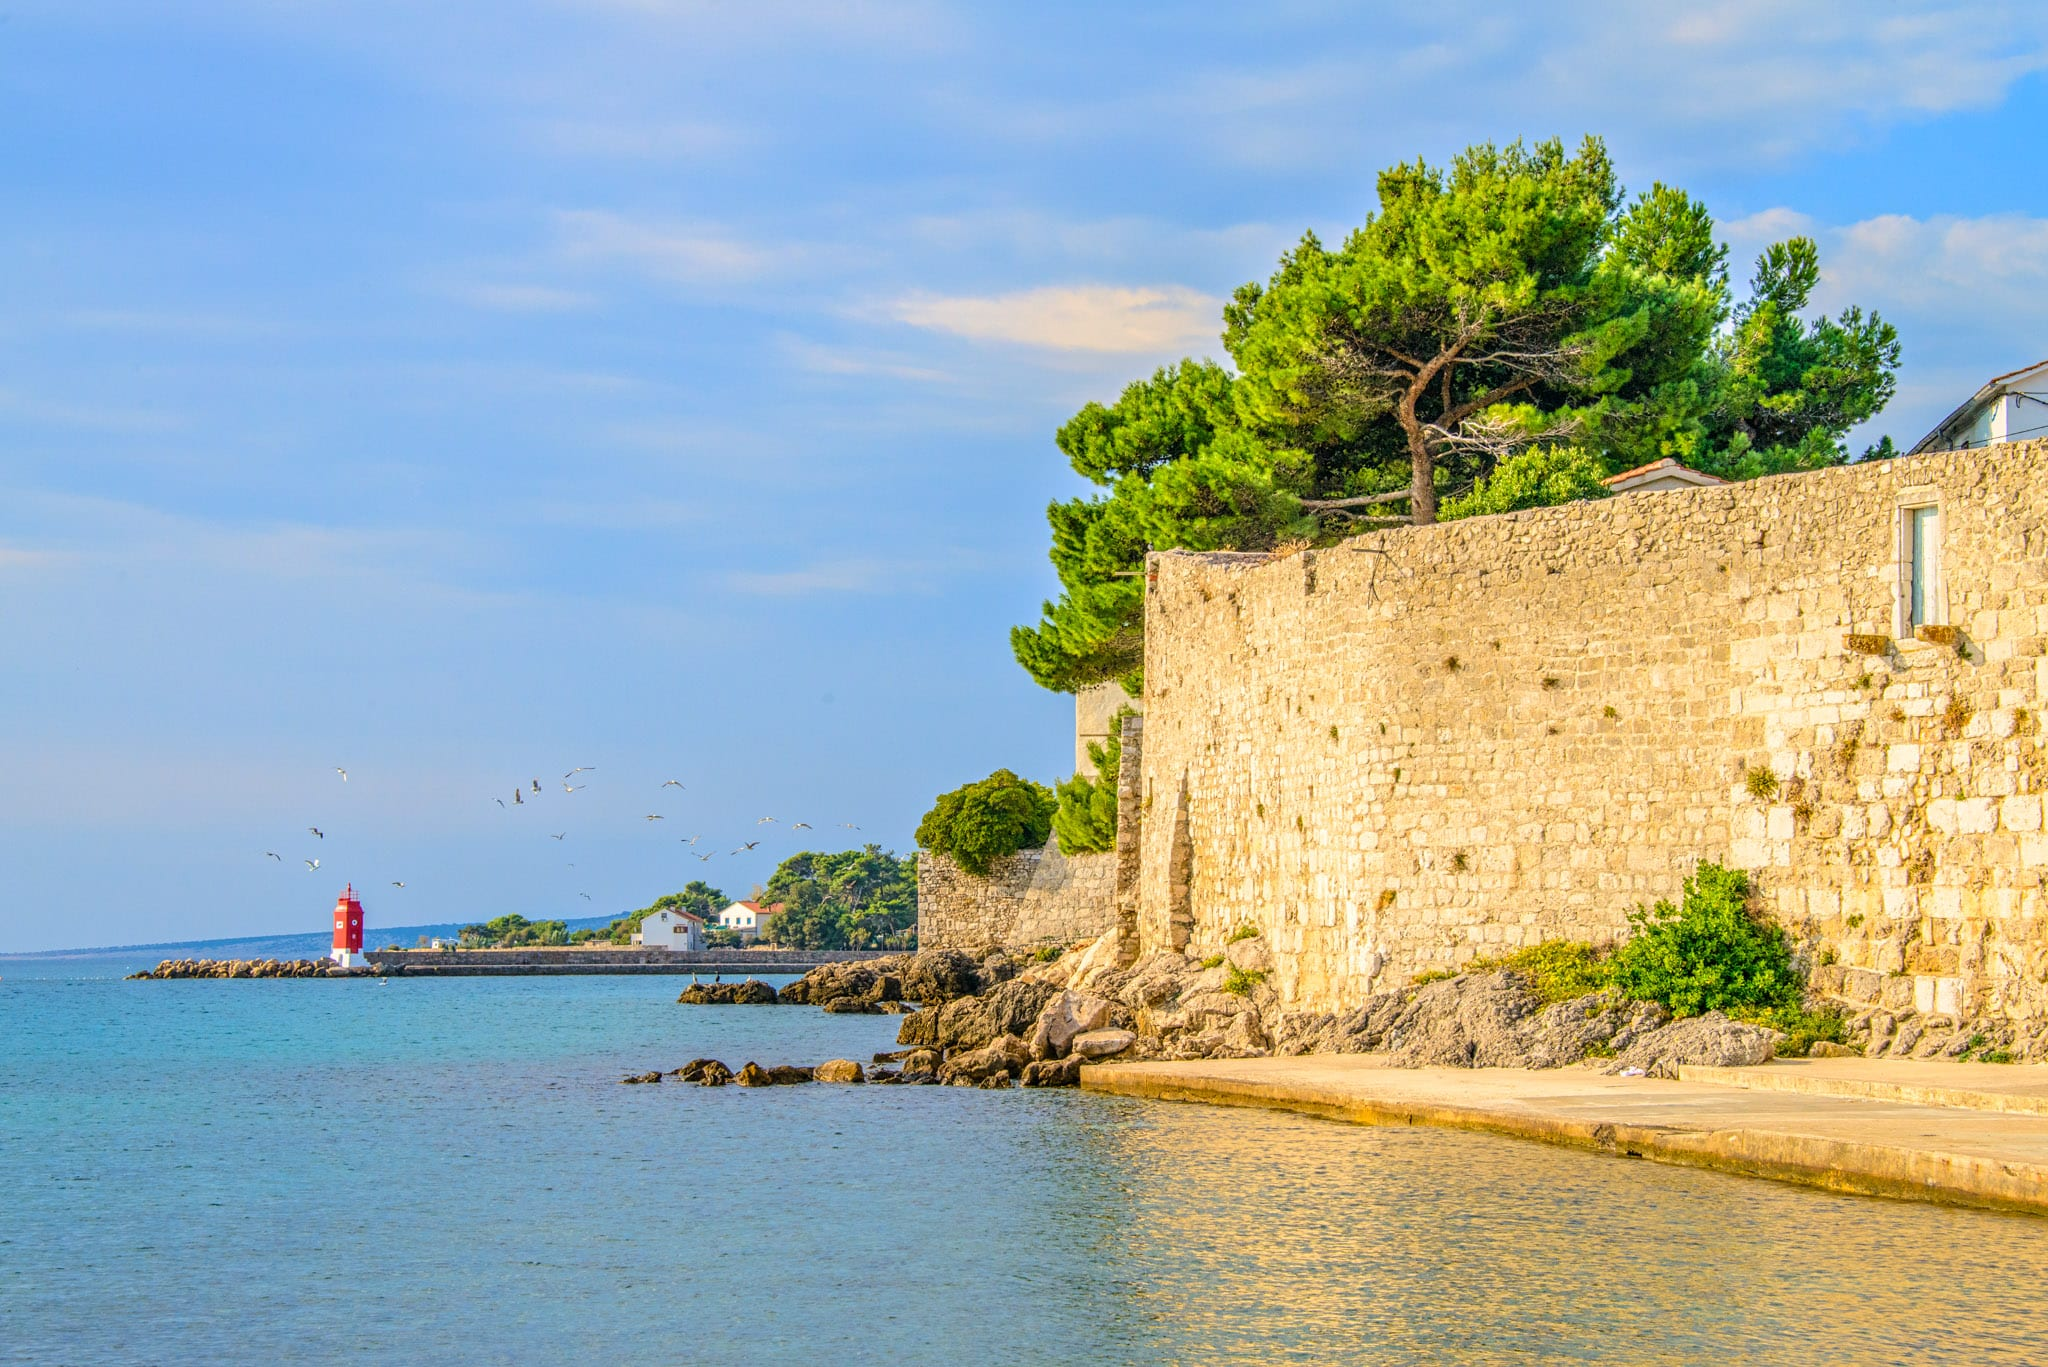 A view of the city walls and a lighthouse in Krk, Croatia.